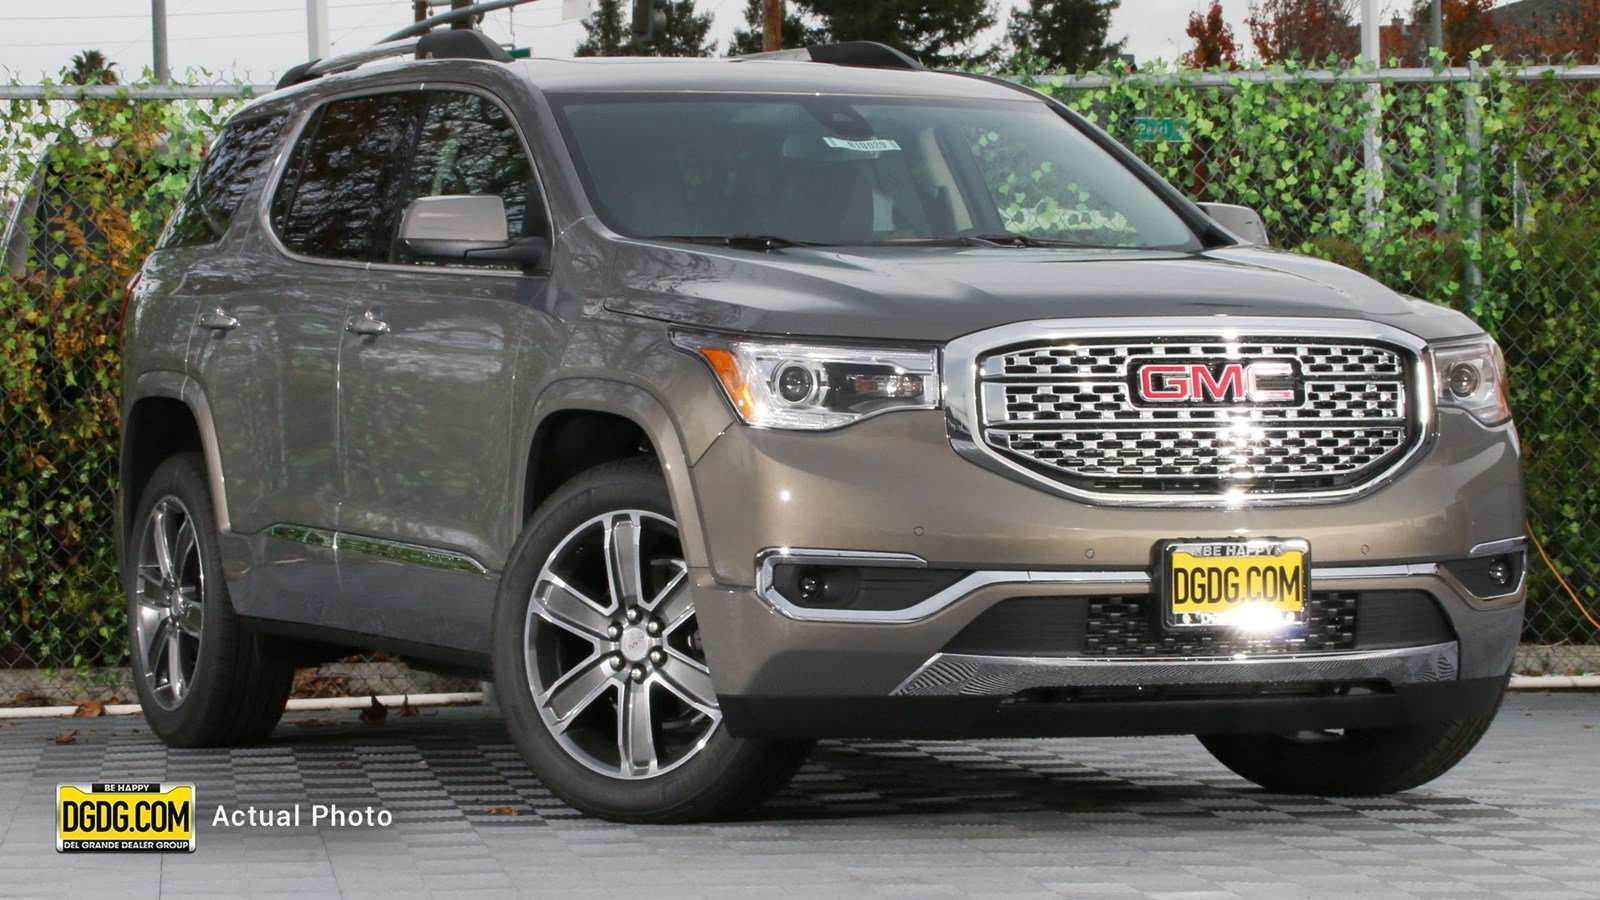 76 New 2019 GMC Acadia Prices